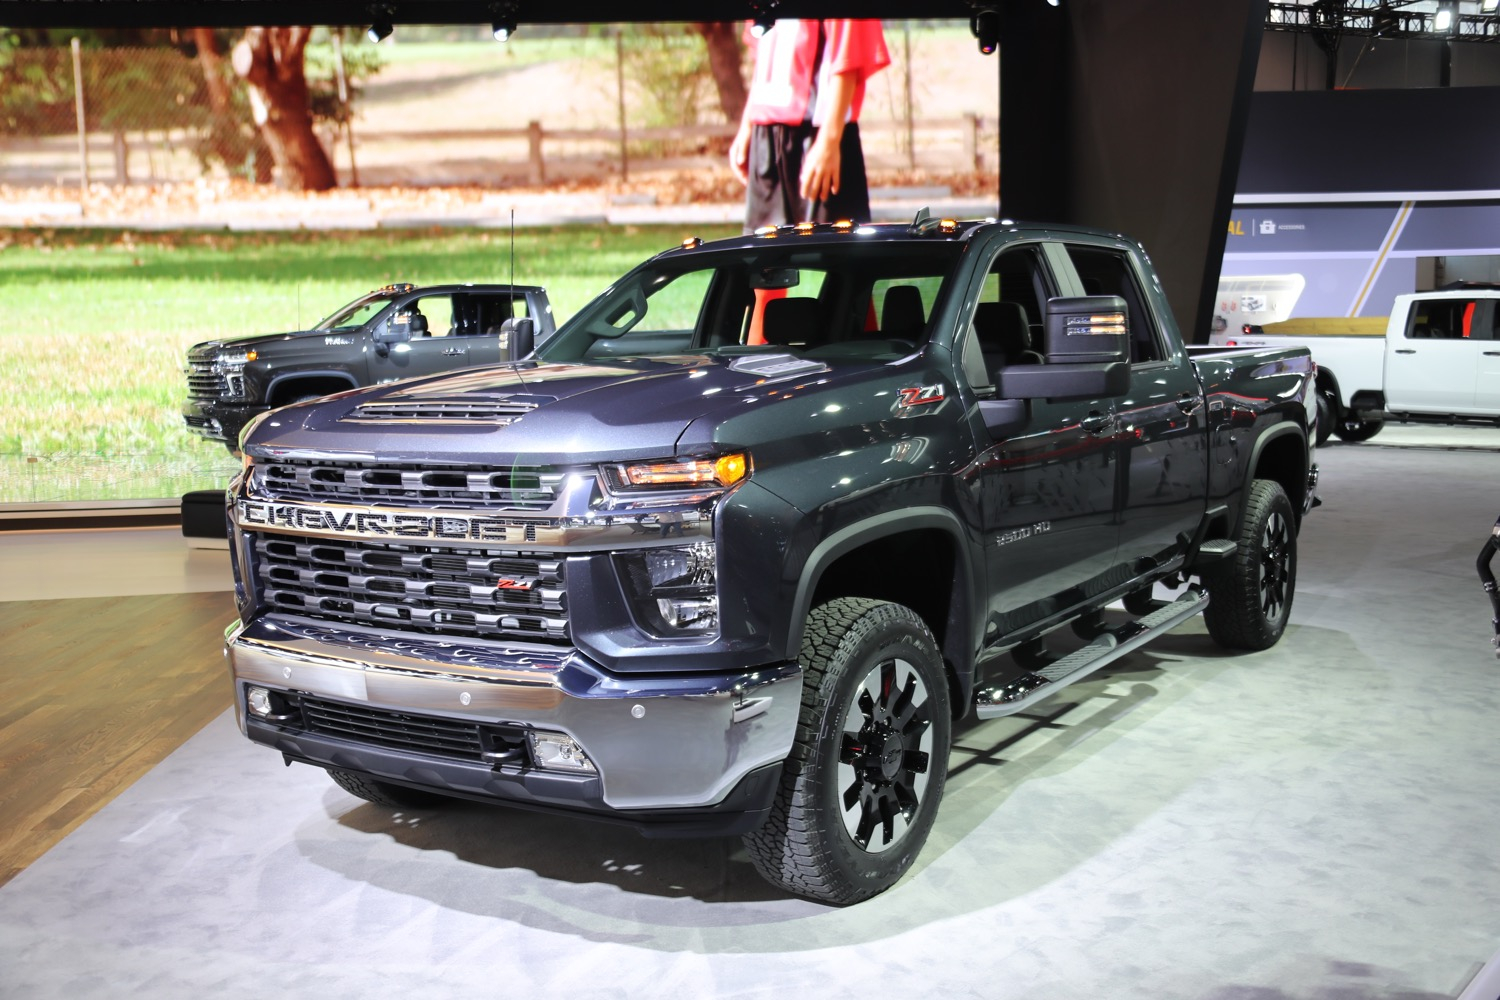 How New Gm 6.6L V8 L8T Engine Compares To Its Predecessor 2021 Chevy Silverado 2500 Oil Capacity, Problems, Pictures